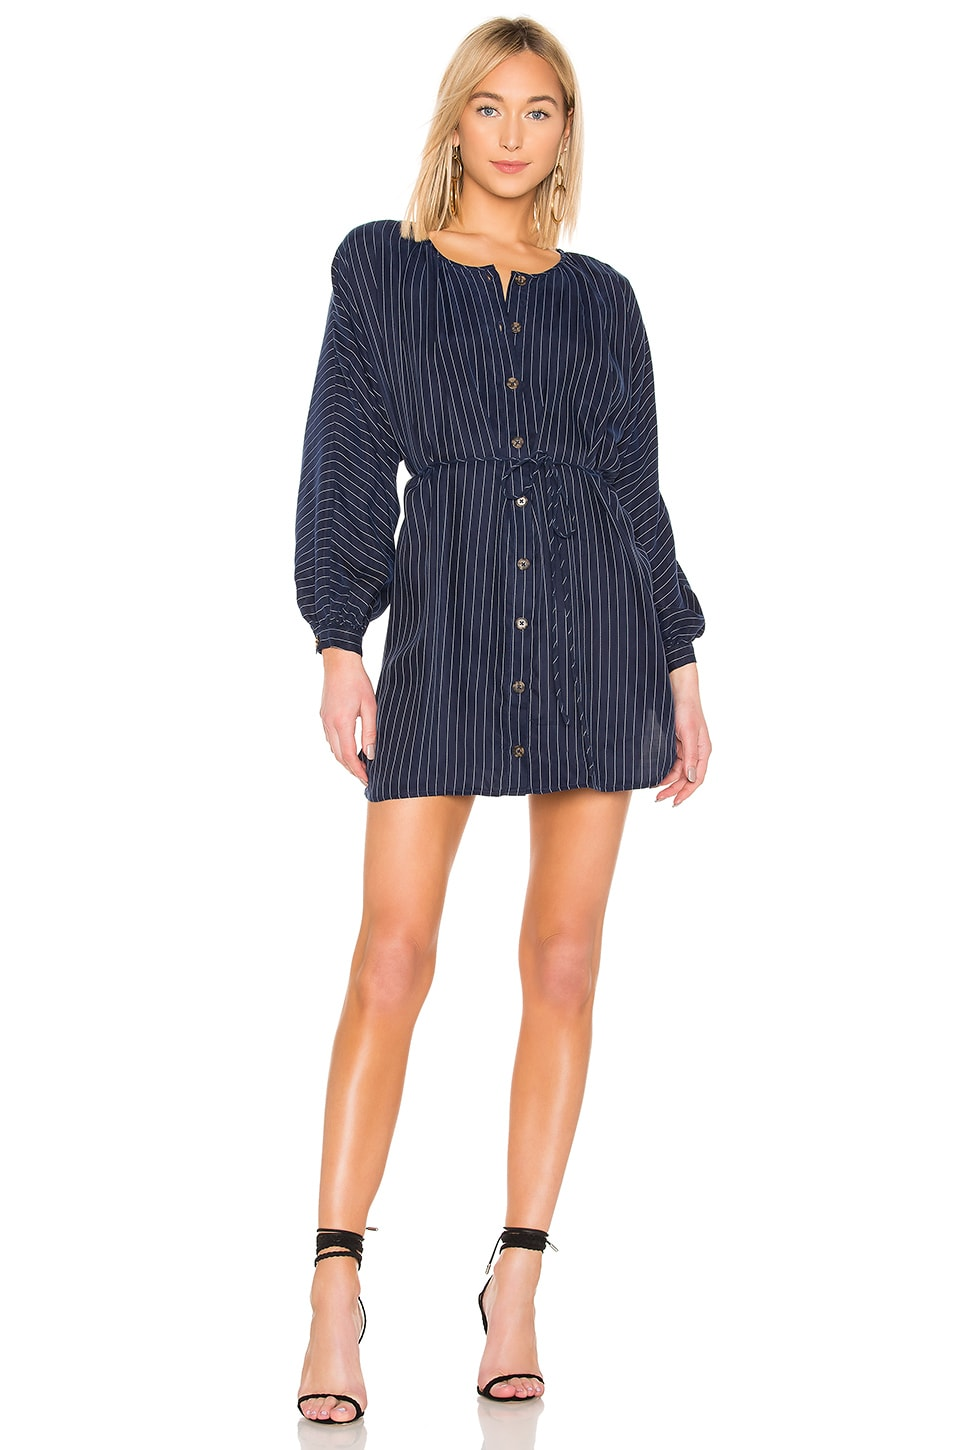 L'Academie The Oliver Mini Dress in Navy & White